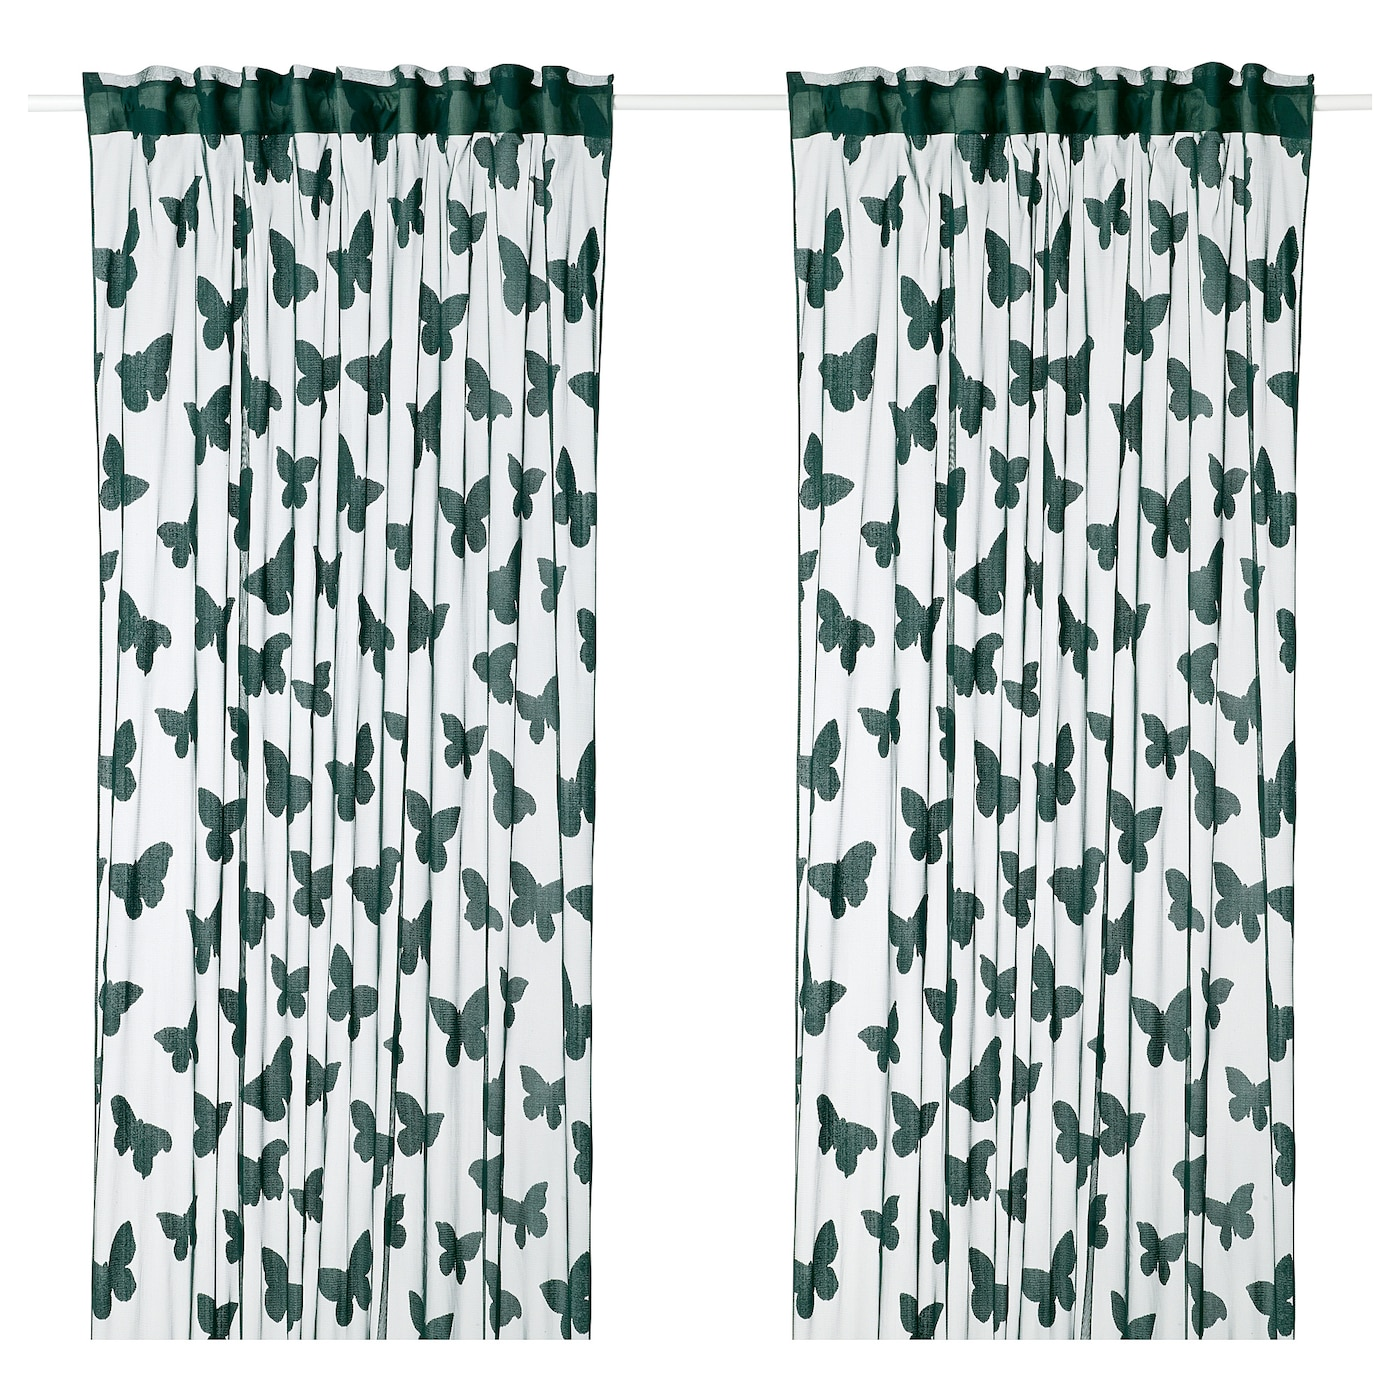 IKEA NÄSSELFJÄRIL net curtains, 1 pair The curtains can be used on a curtain rod or a curtain track.